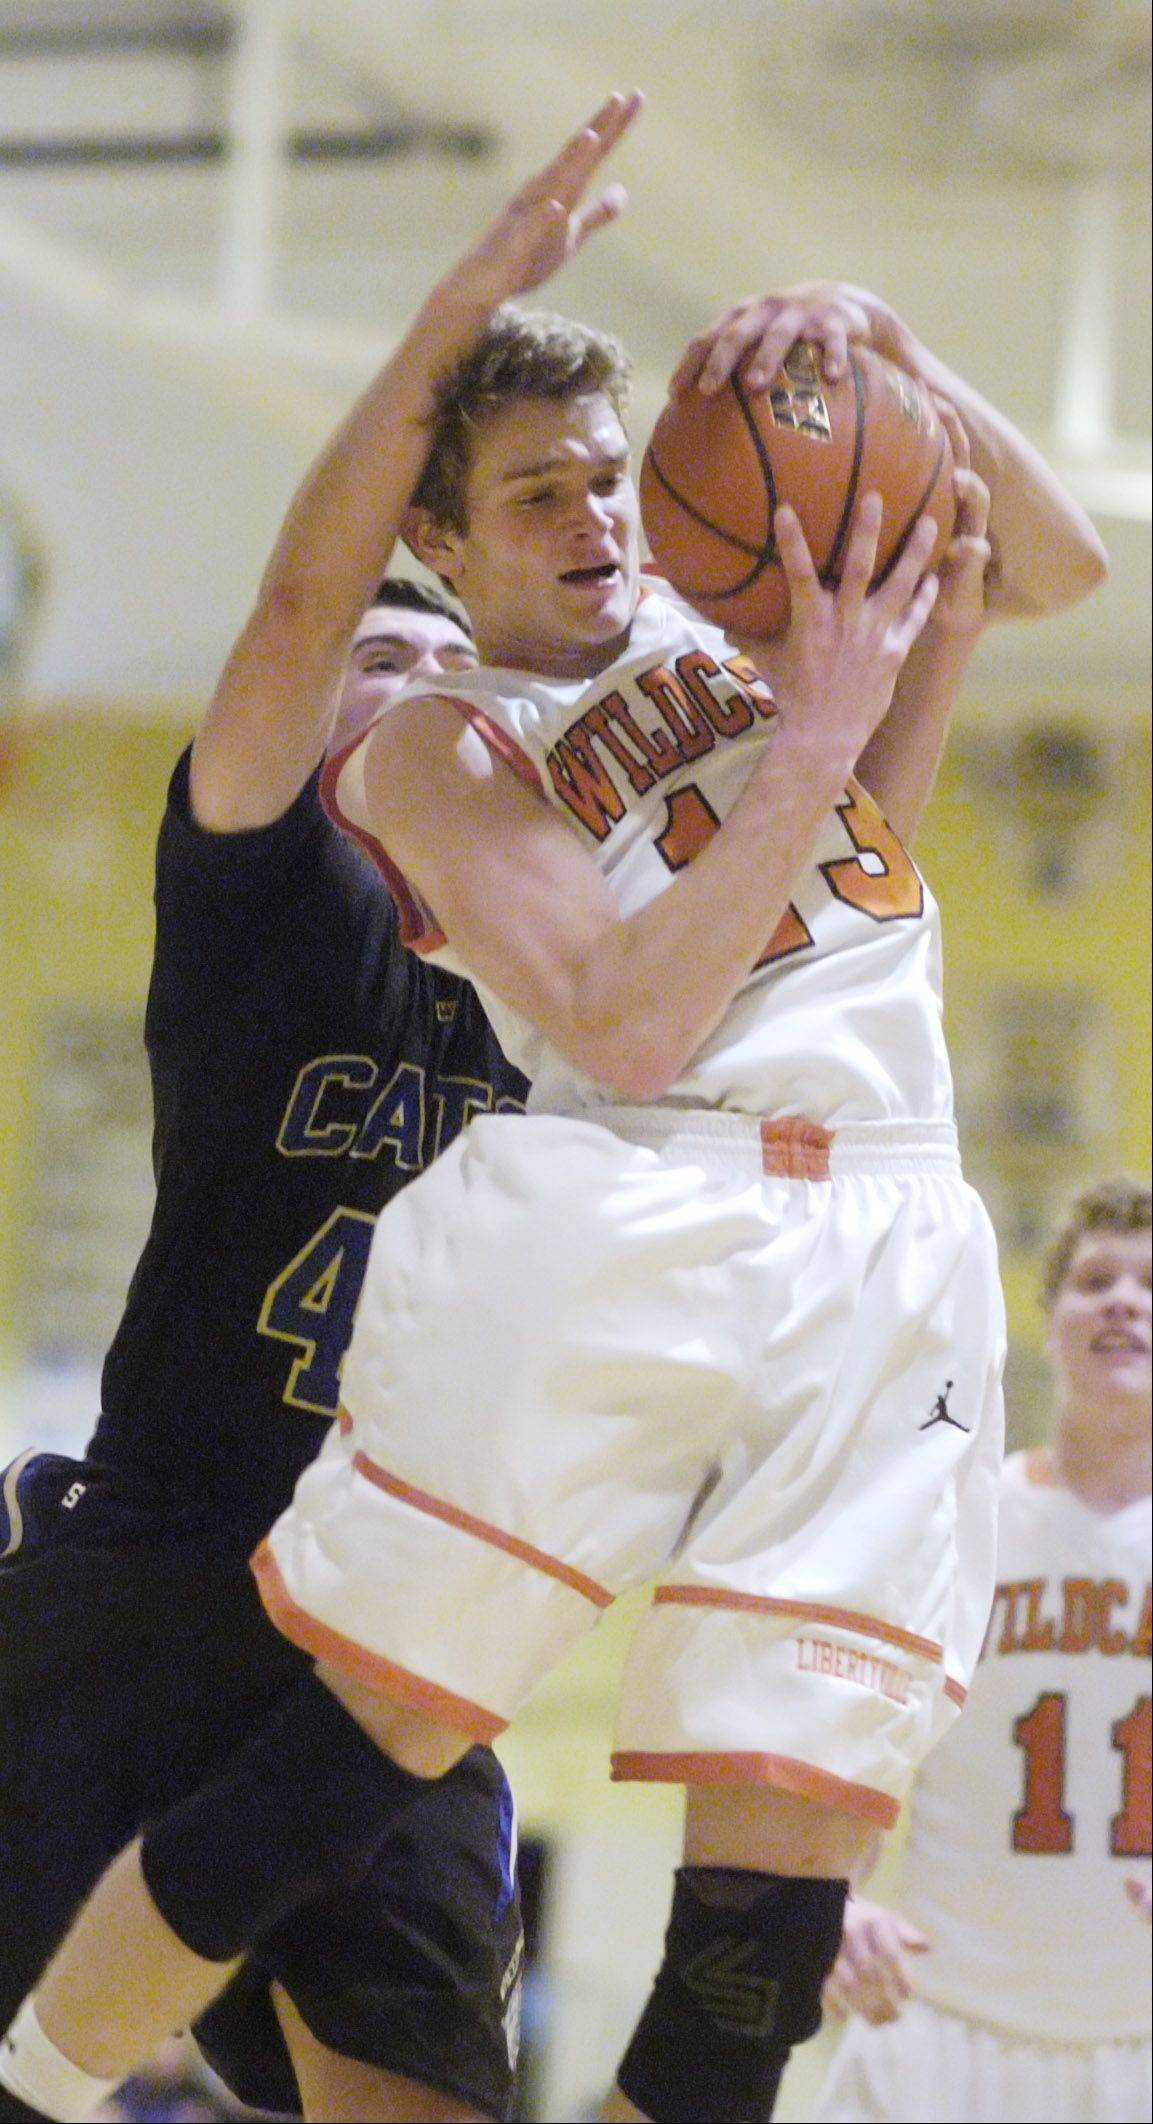 Libertyville's Anthony Mack, right, grabs a rebound in front of Wheeling's Charlie Kirk during Tuesday's basketball game in Wheeling.